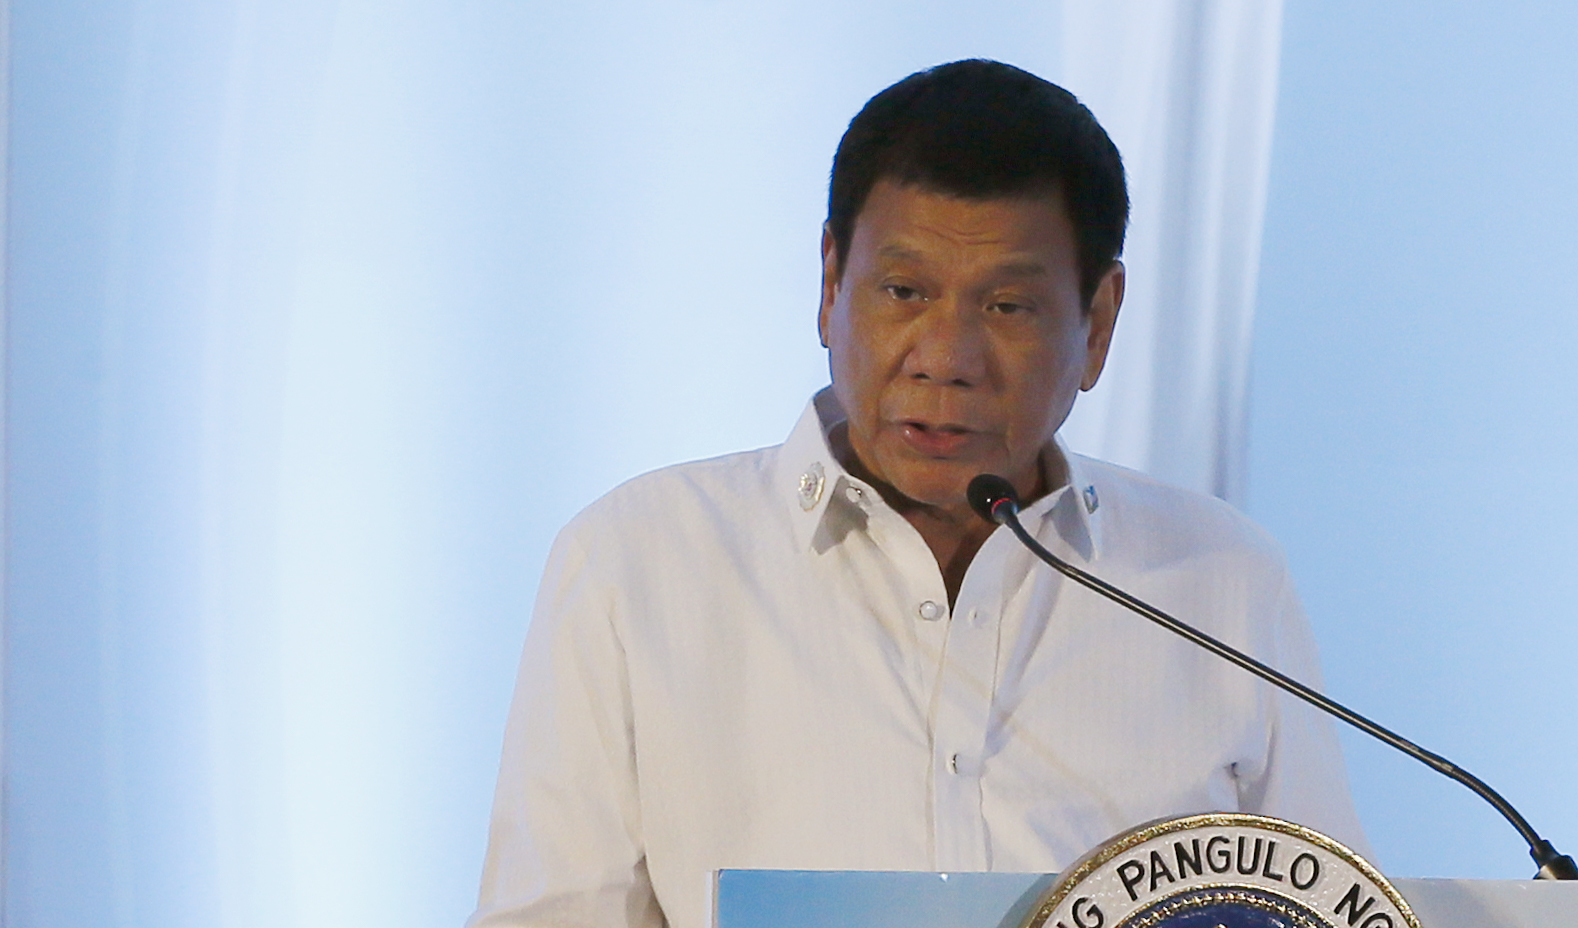 International lawyer Defends Duterte's Skipping Of Other ASEAN Summit Events